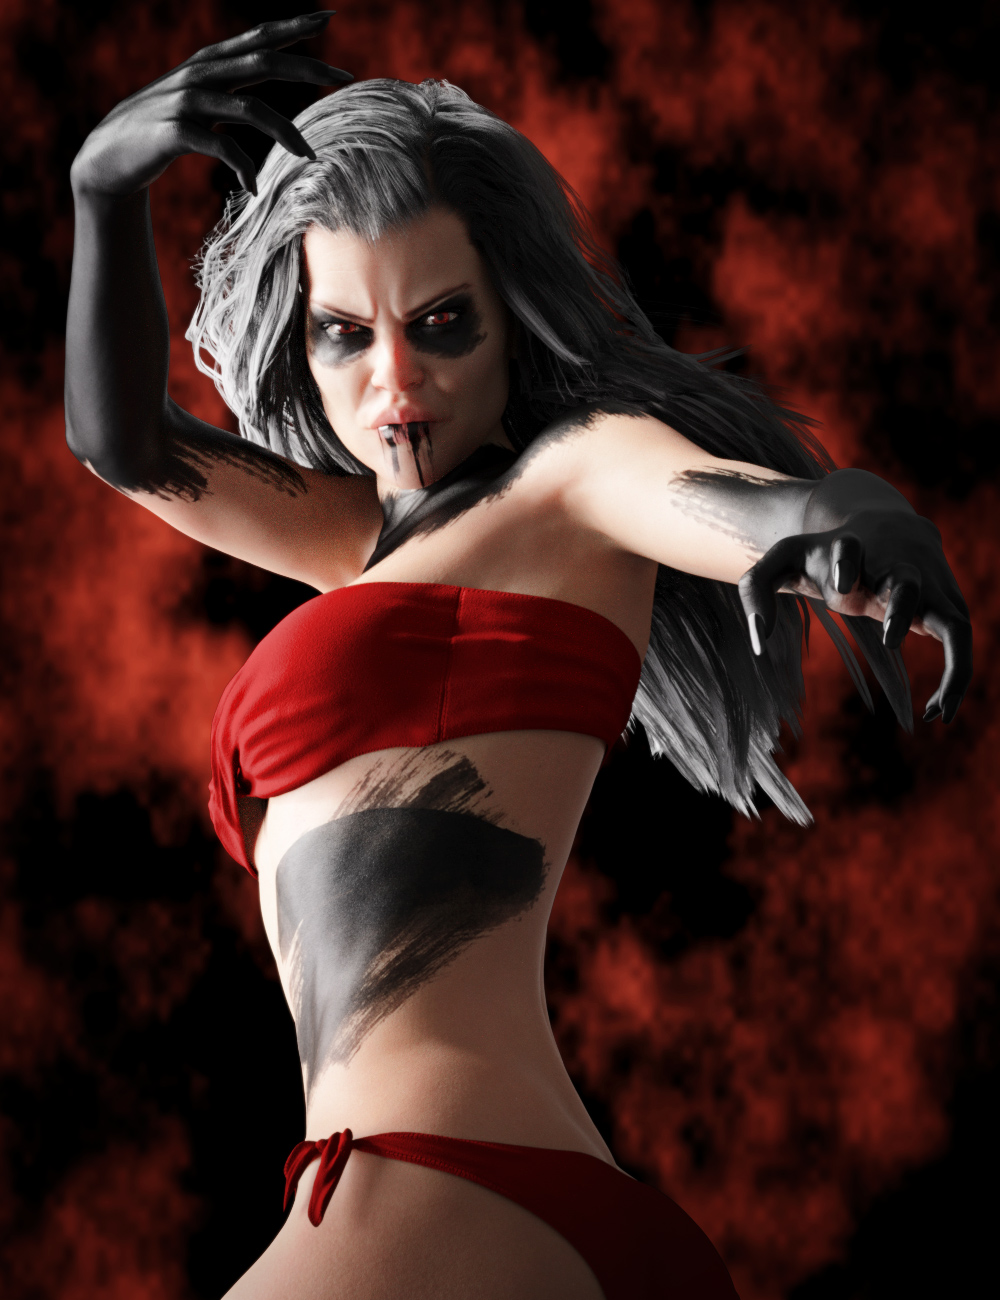 Devilish Makeup for Genesis 8 and 8.1 by: Neikdian, 3D Models by Daz 3D